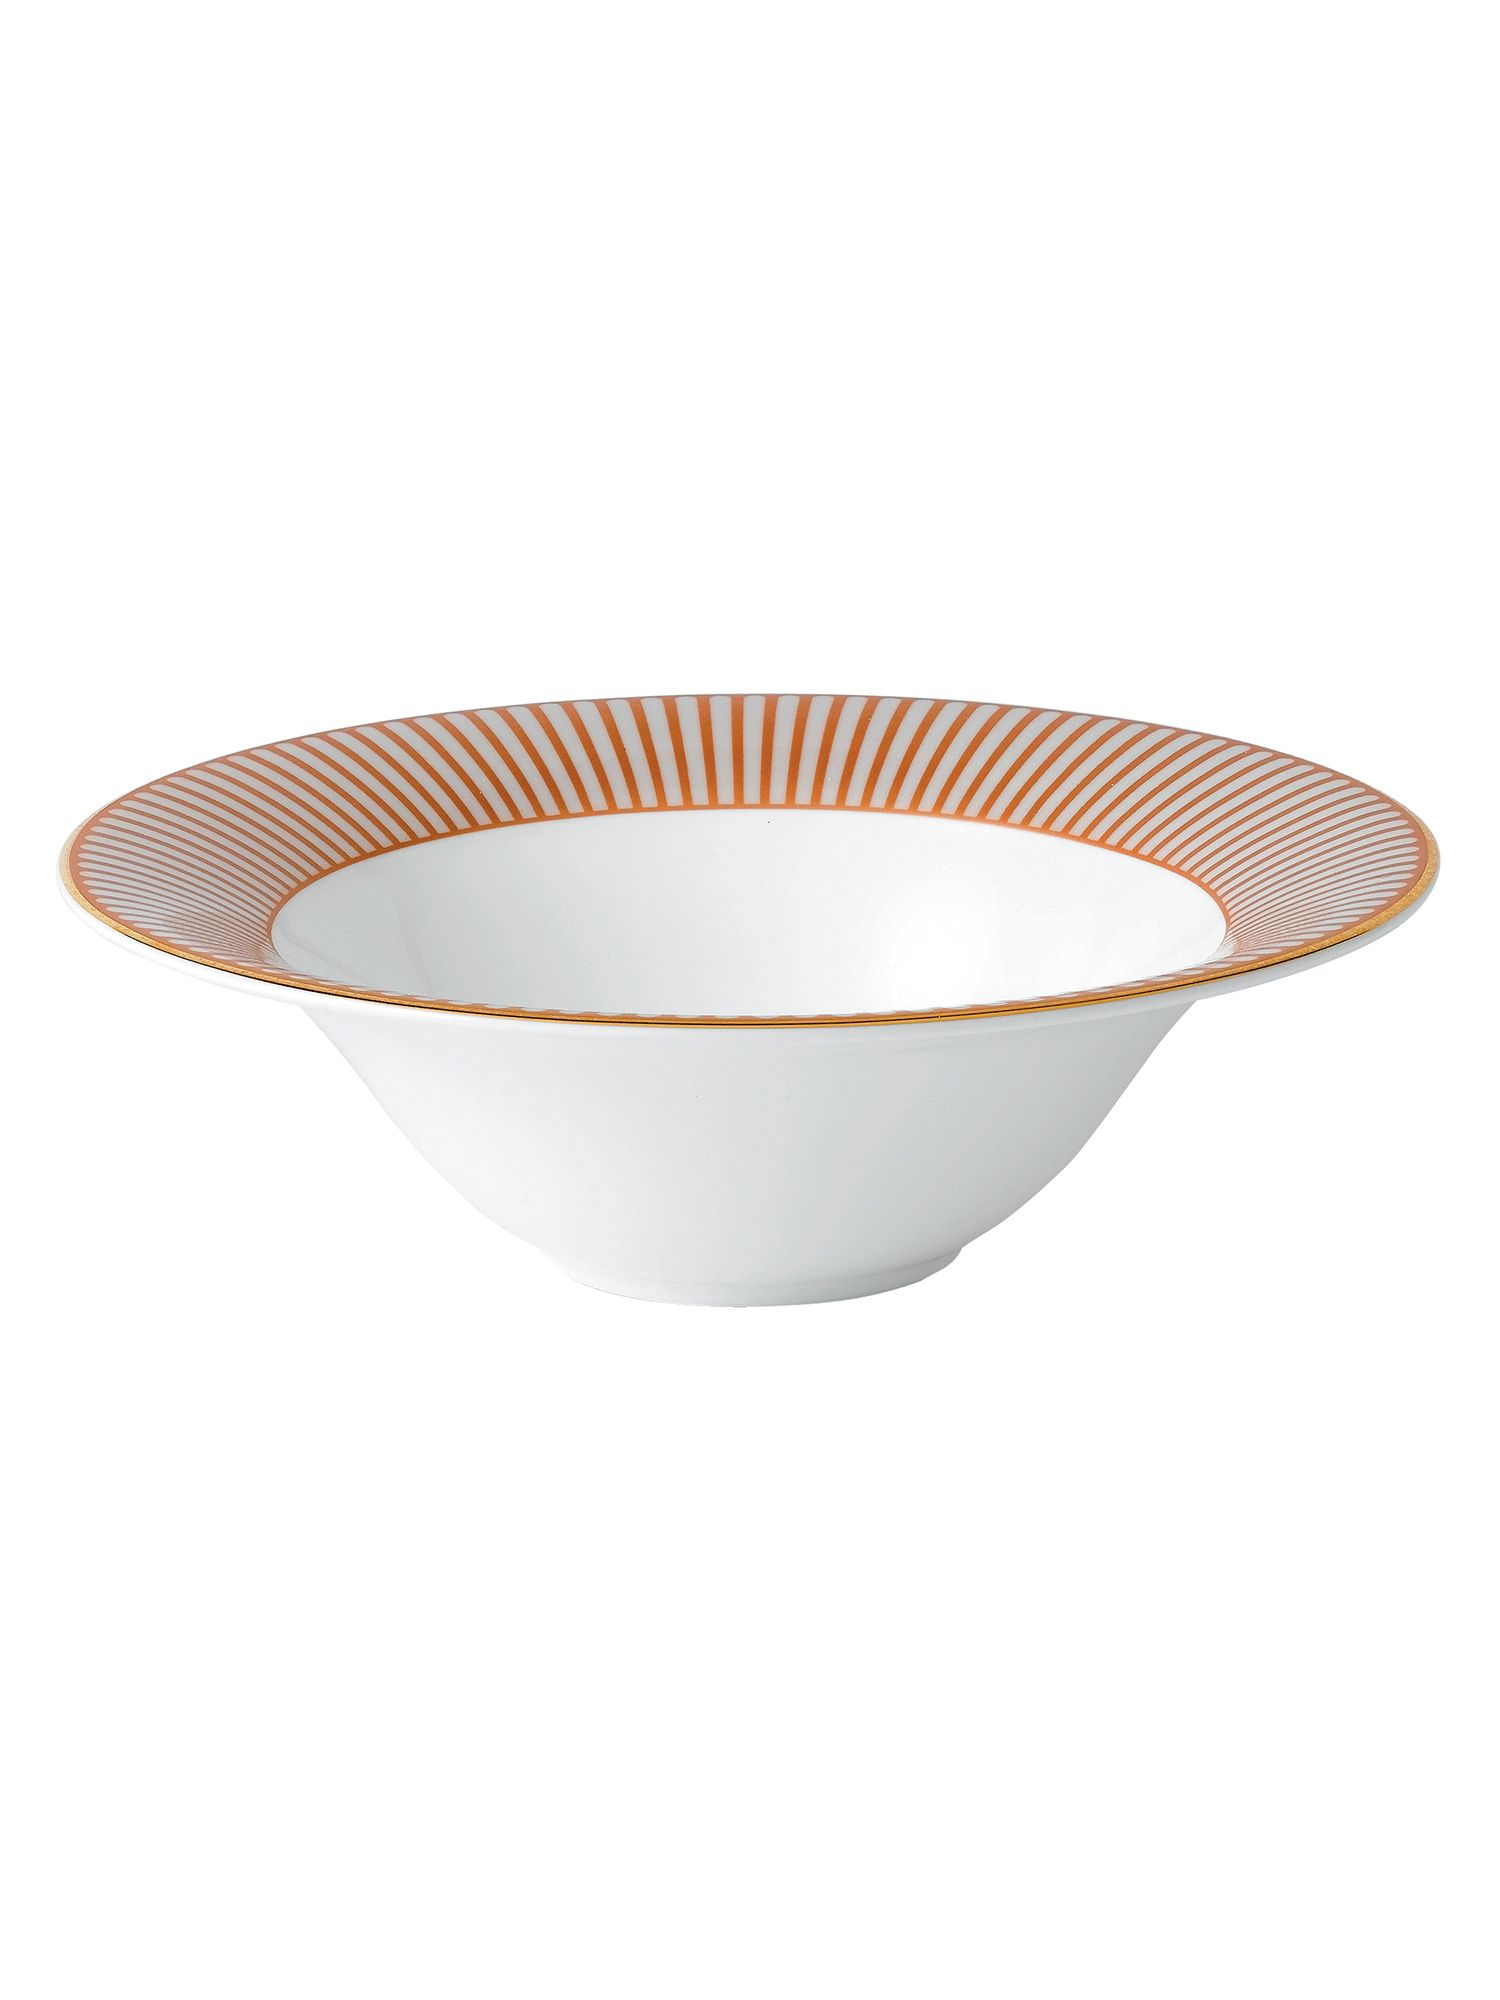 Palladian fine china cereal bowl